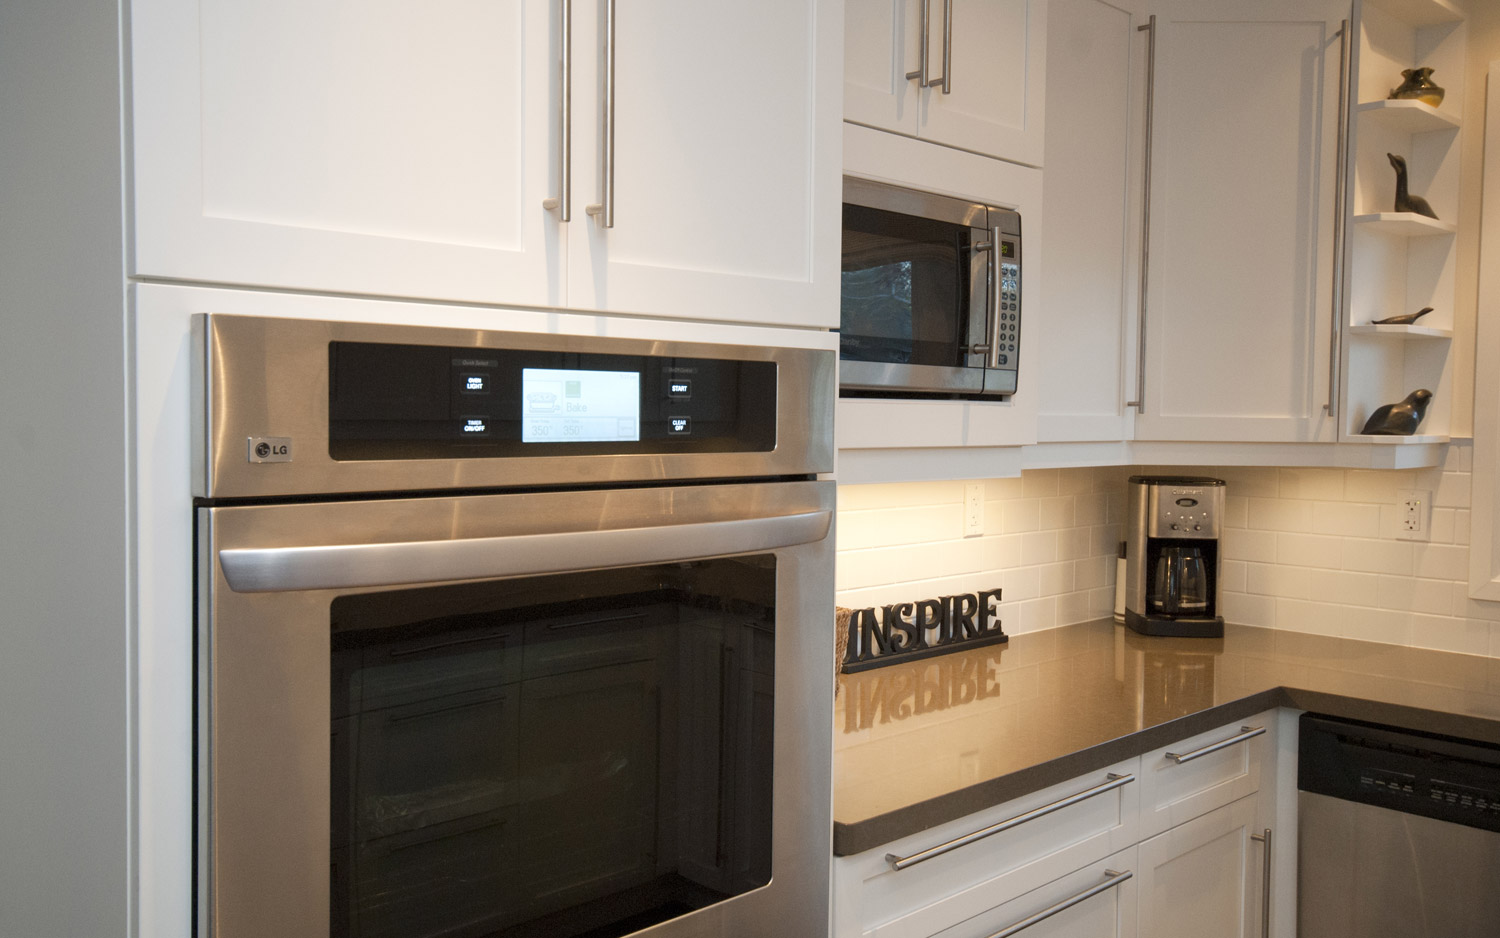 stainless steel wall oven - total living concepts barrie ontario